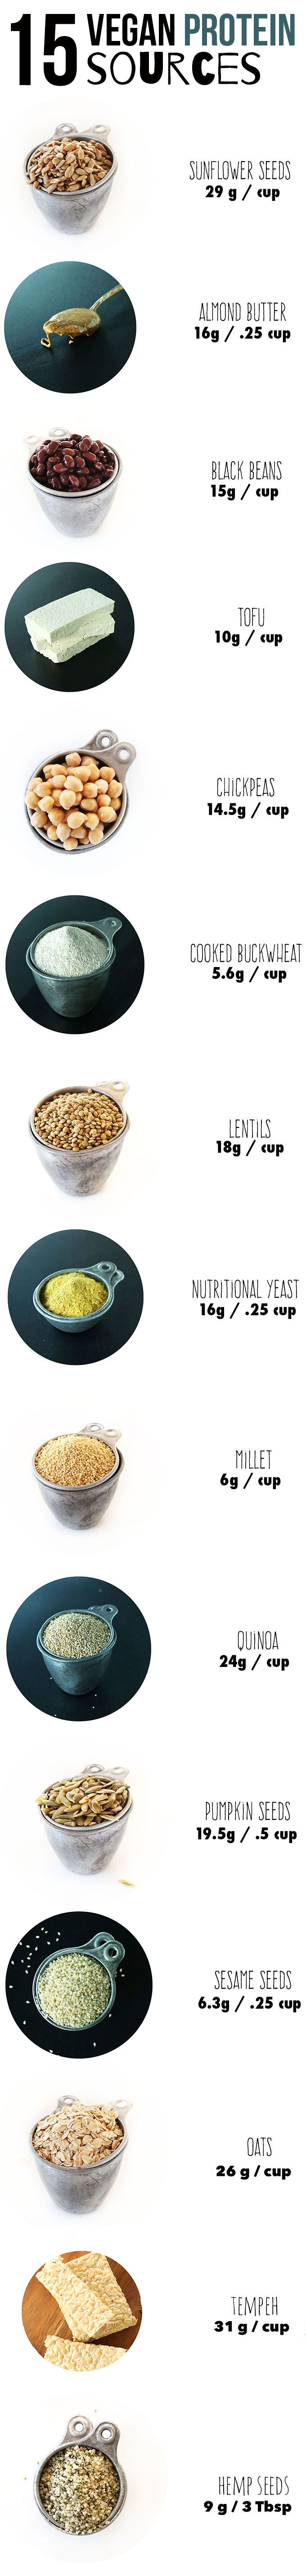 15 clean, healthy vegan or #vegetarian protein sources with grams per Serving. #plantbased diet